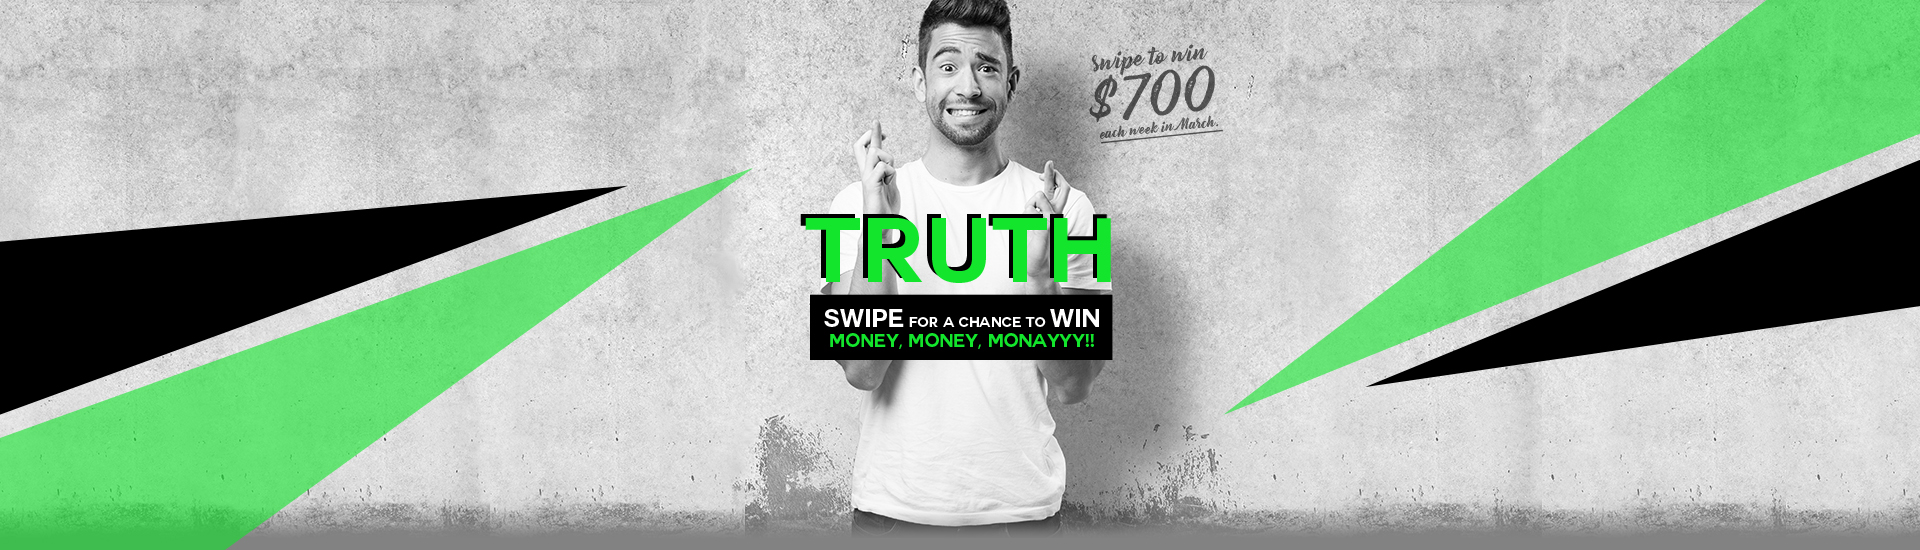 truth-swipe-to-win-moneyv6